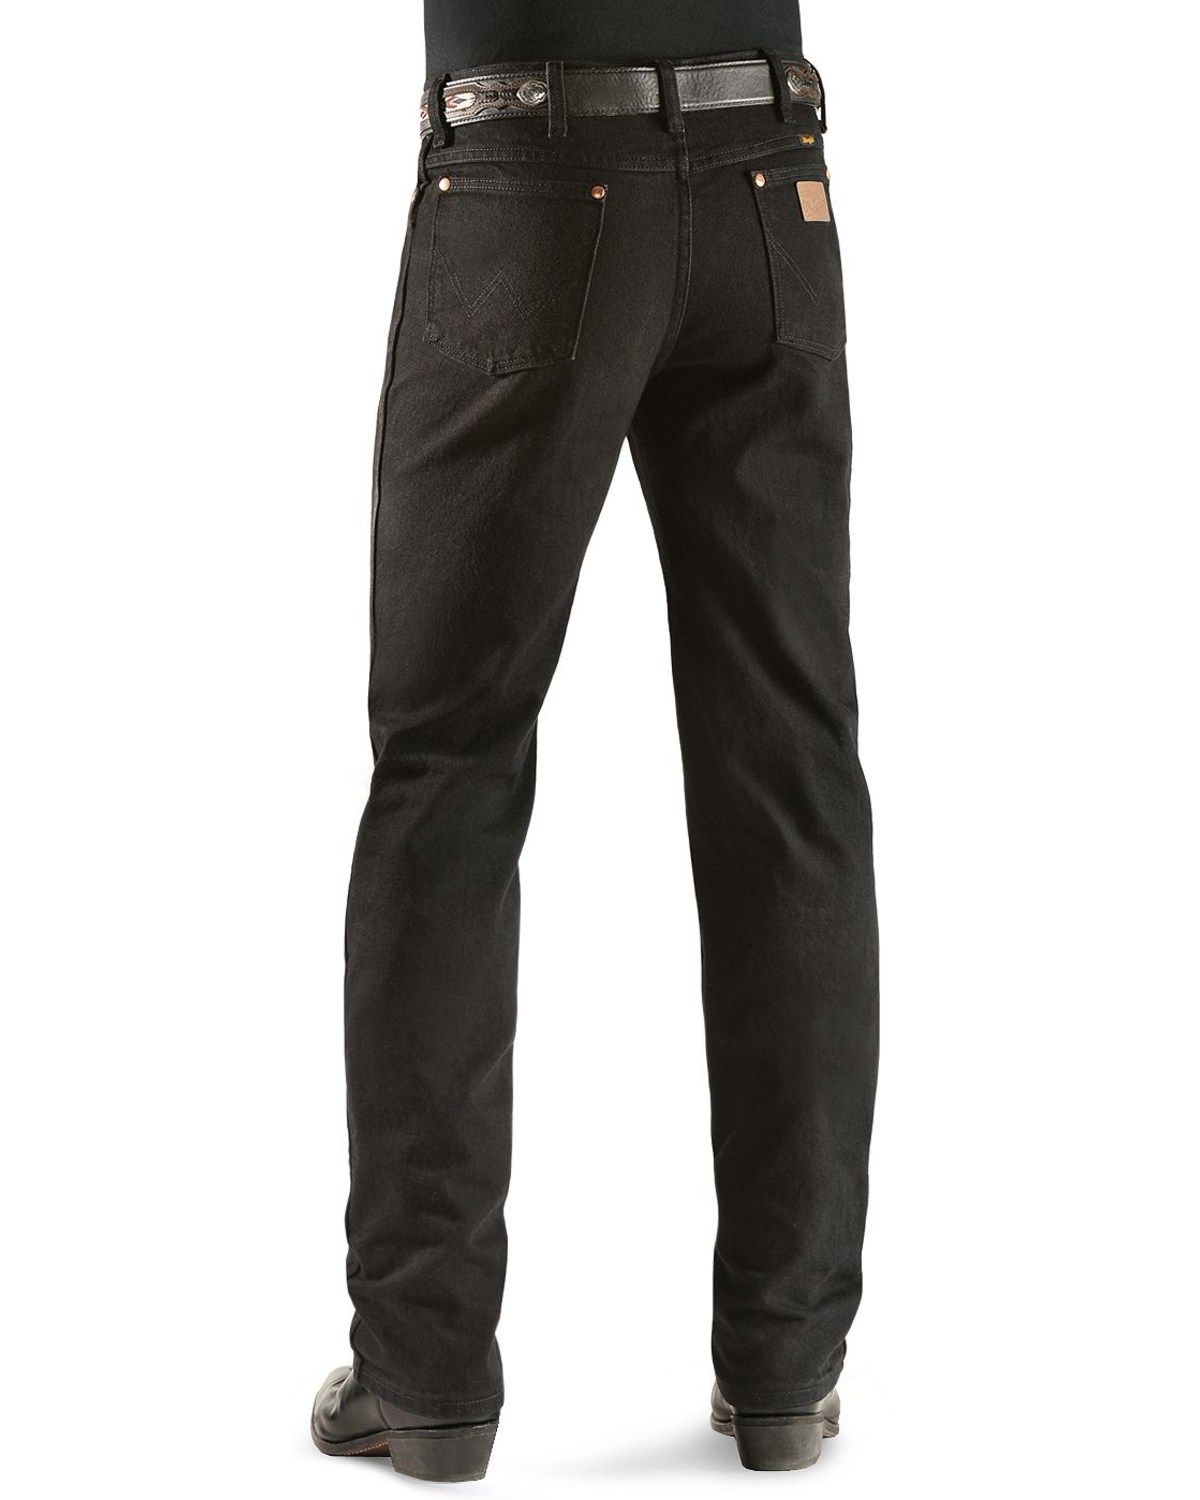 2b4ab6c5 Zoomed Image Wrangler Men's Slim Fit 936 Cowboy Cut Jeans, Shadow Black, ...